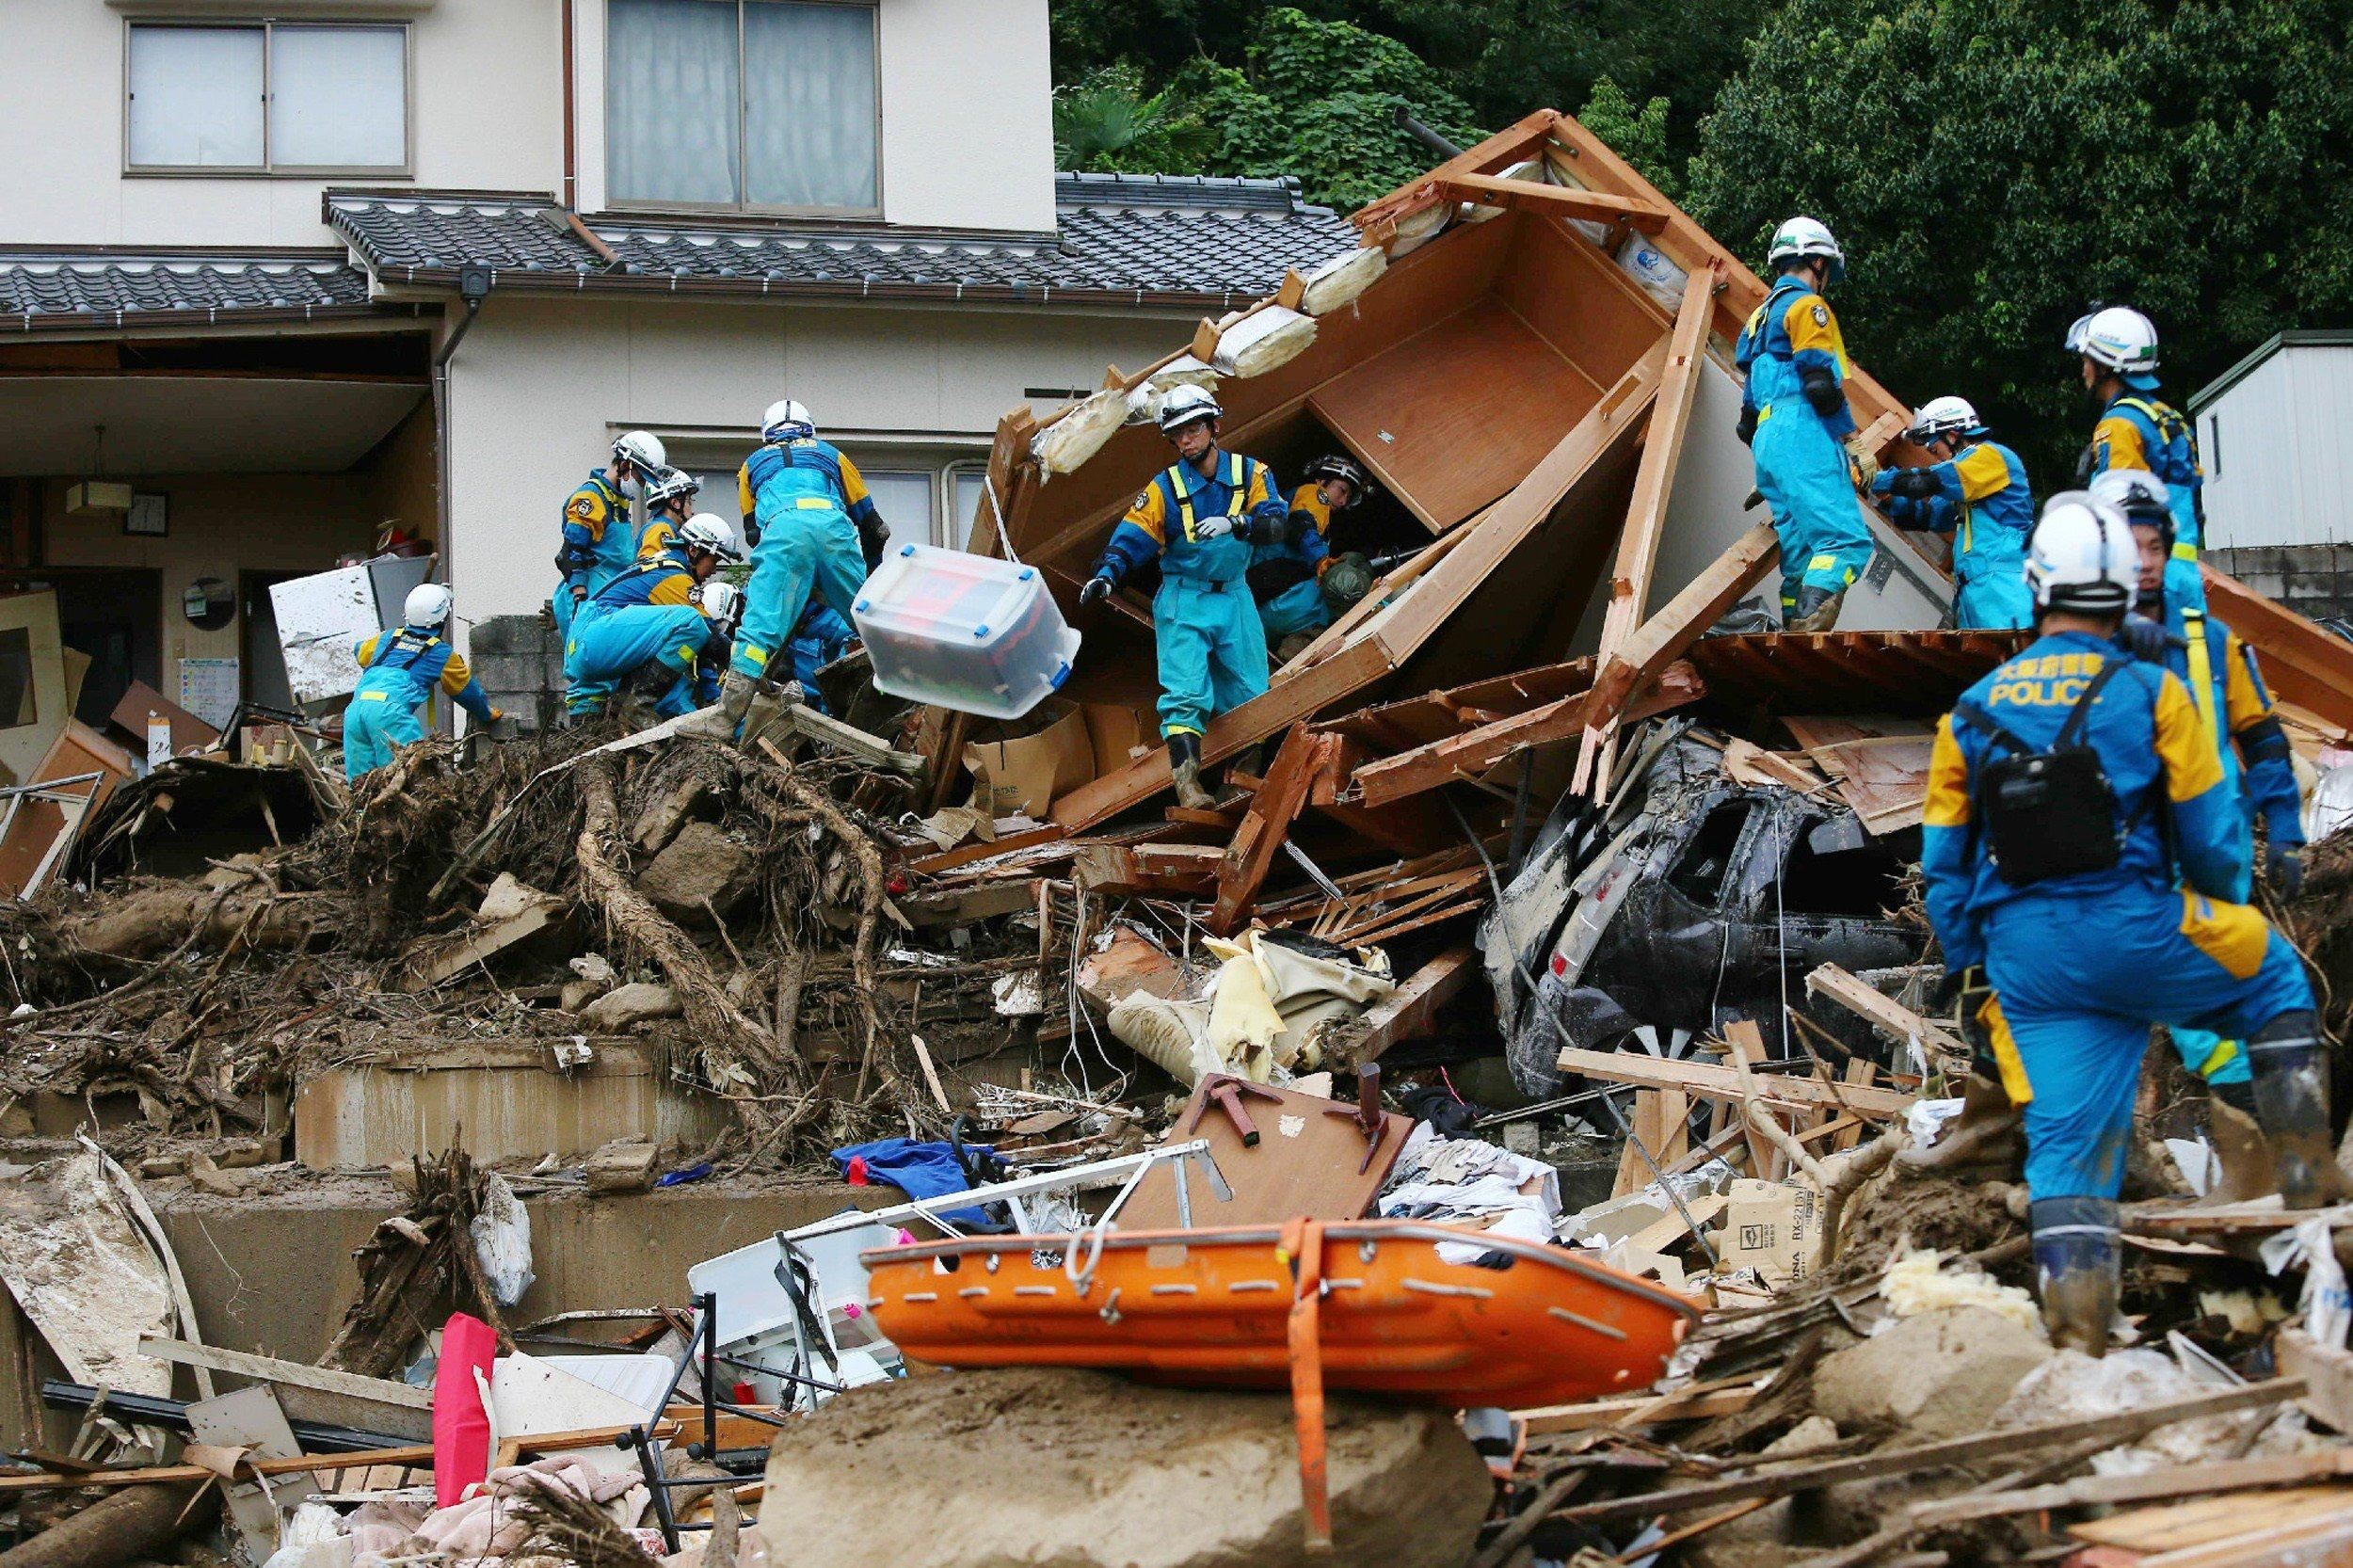 Image: Aftermath of landslide in Hiroshima, Japan